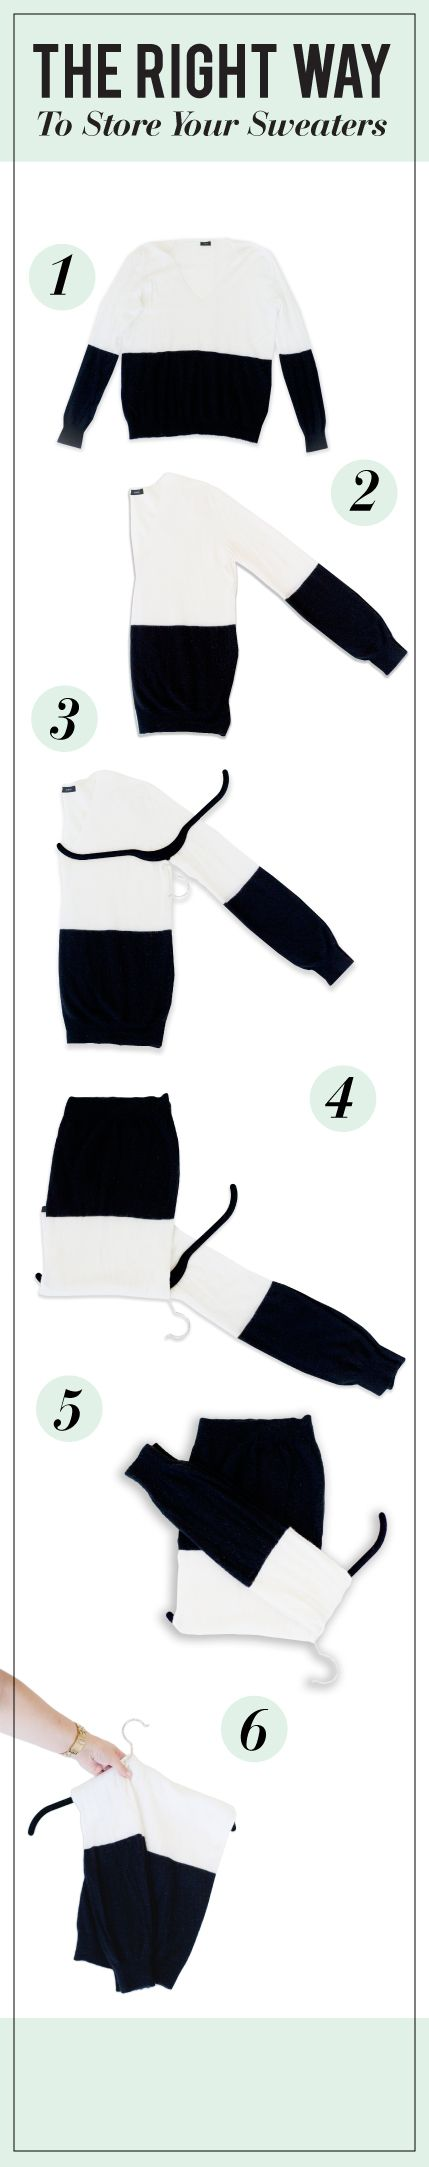 How to store your sweaters - hack